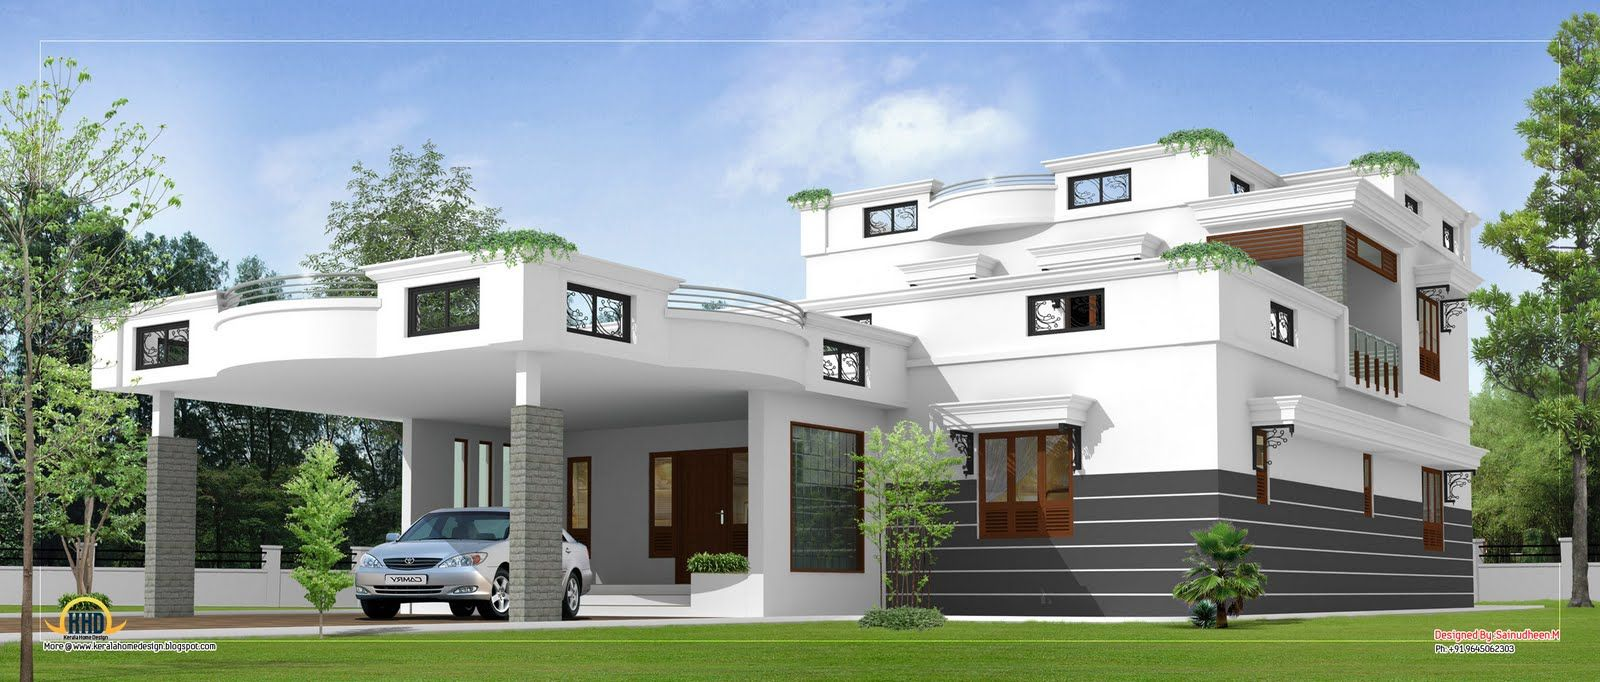 Contemporary Modern Home Plans modern house design awesome design your house modern home designs